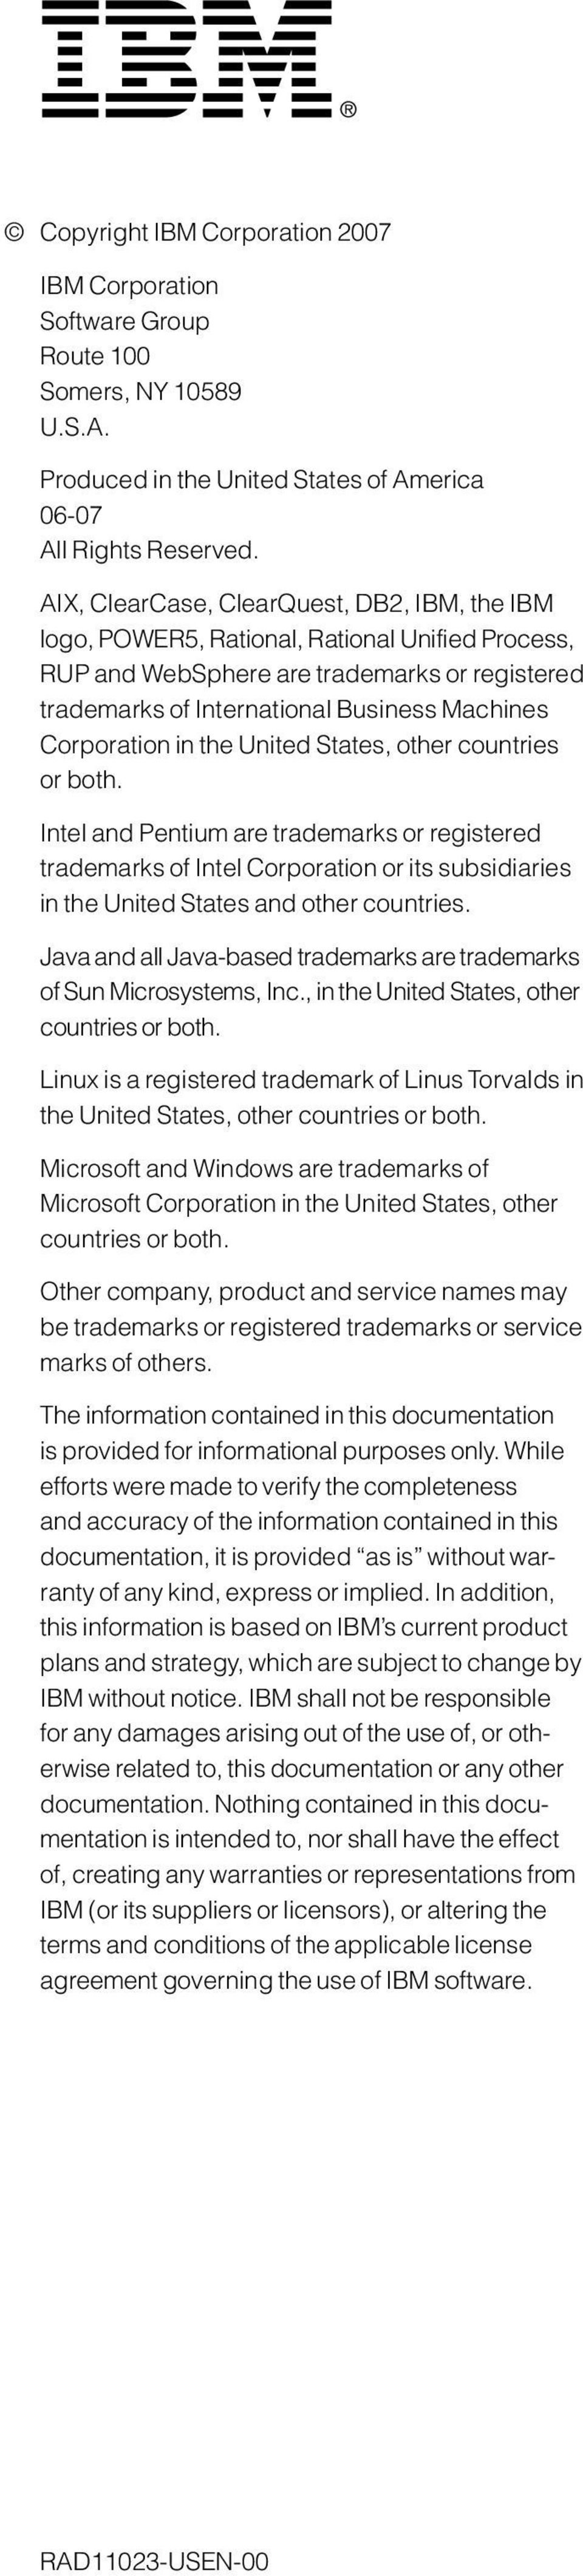 Corporation in the United States, other countries or both. Intel and Pentium are trademarks or registered trademarks of Intel Corporation or its subsidiaries in the United States and other countries.